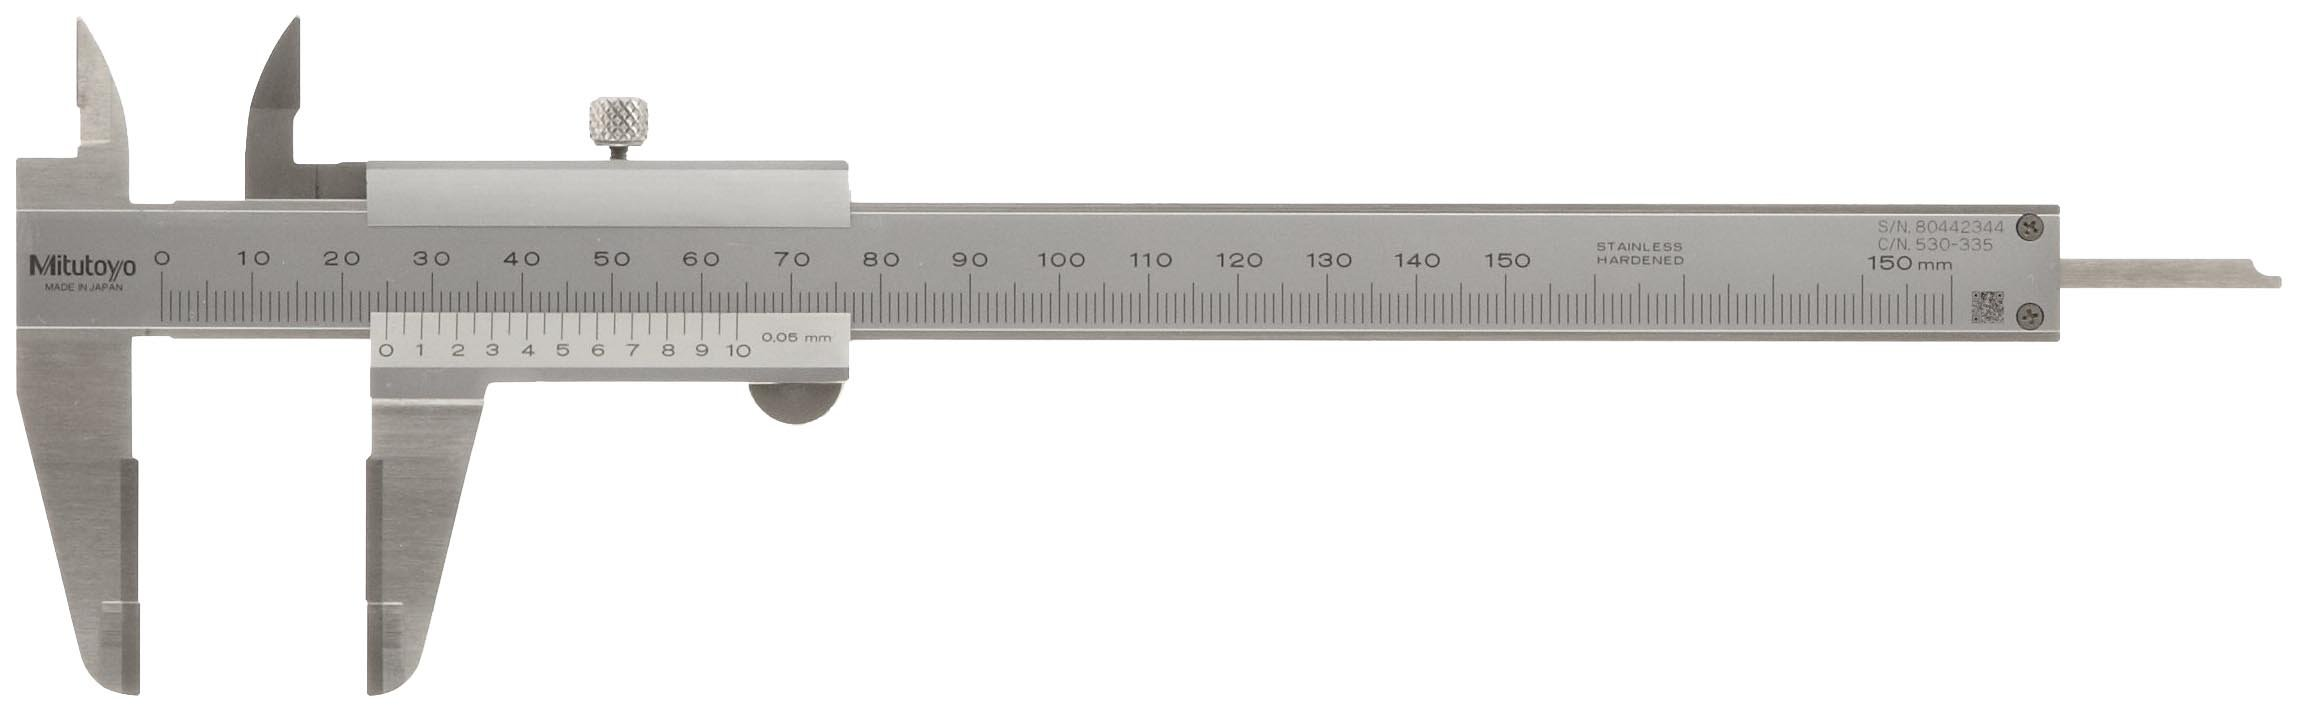 Outside 0//0mm-150mm Range Mitutoyo 530-101 Vernier Calipers 0.05mm Resolution Depth and Step Measurements Stainless Steel for Inside +//-0.05mm Accuracy 40mm Jaw Depth Metric